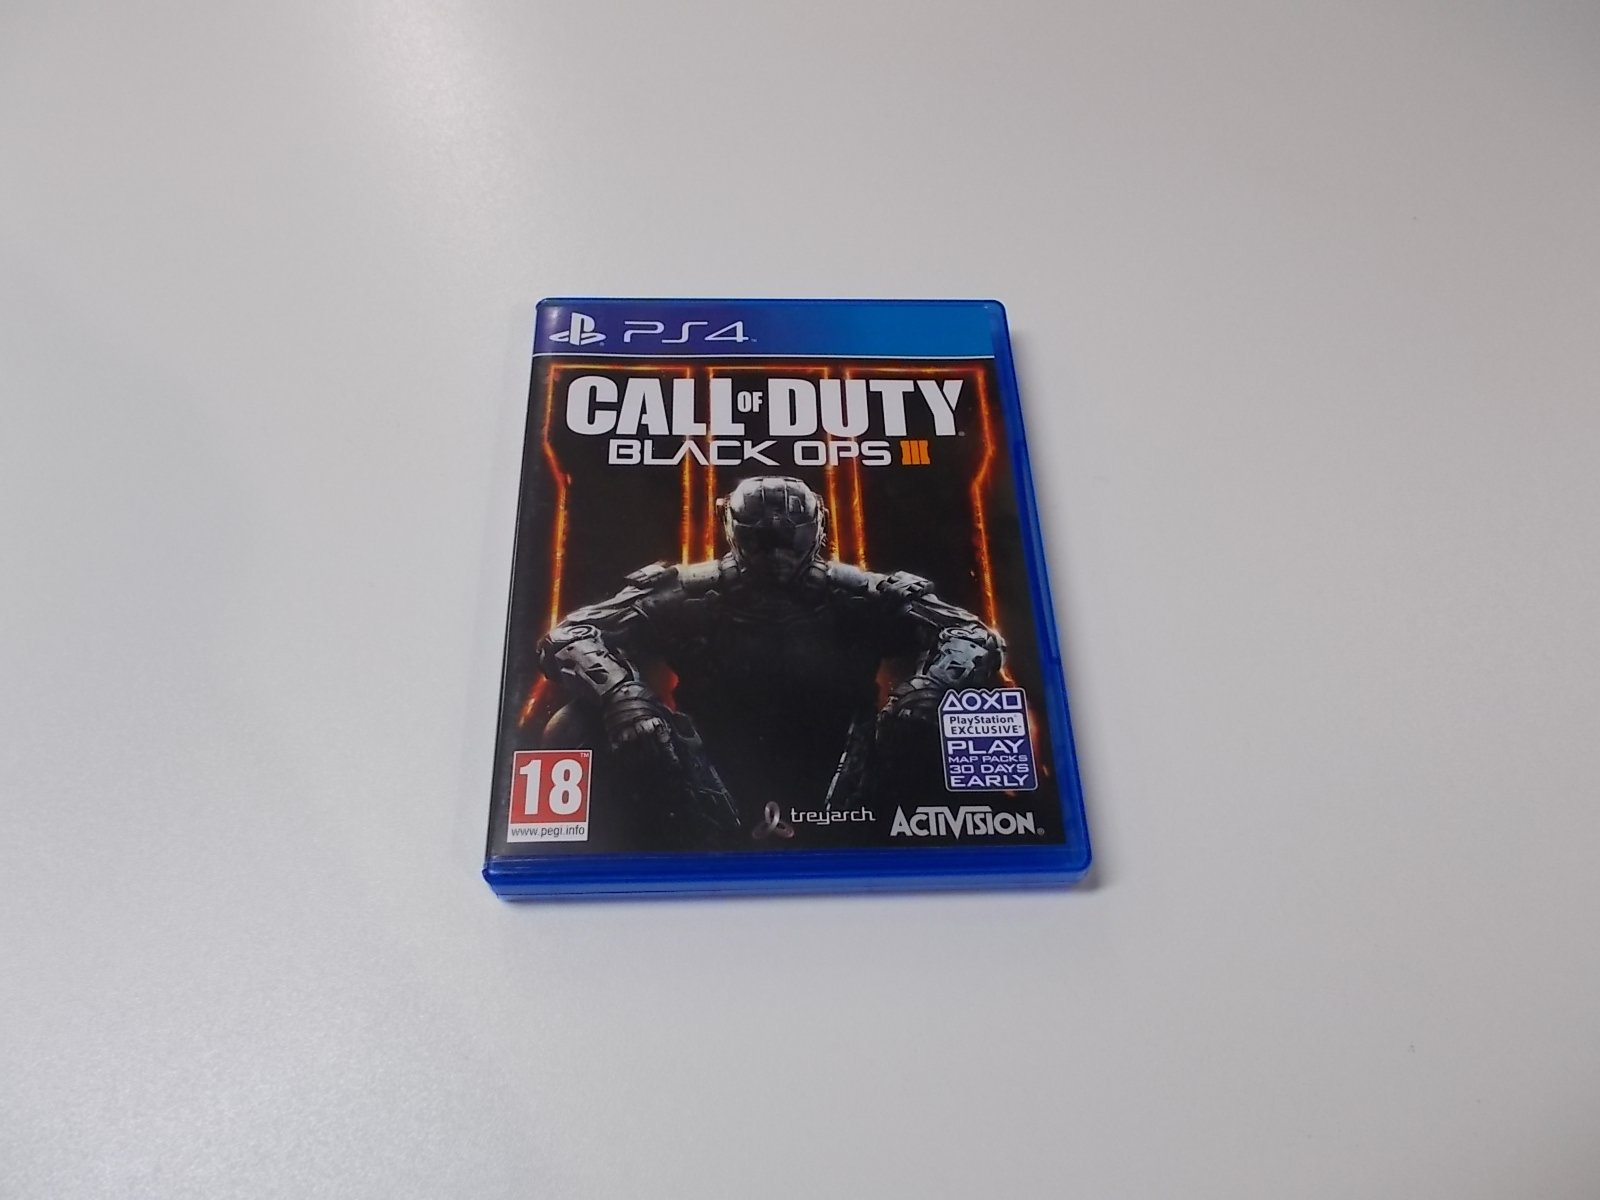 Call Of Duty Black Ops 3 - GRA Ps4 - Opole 0482